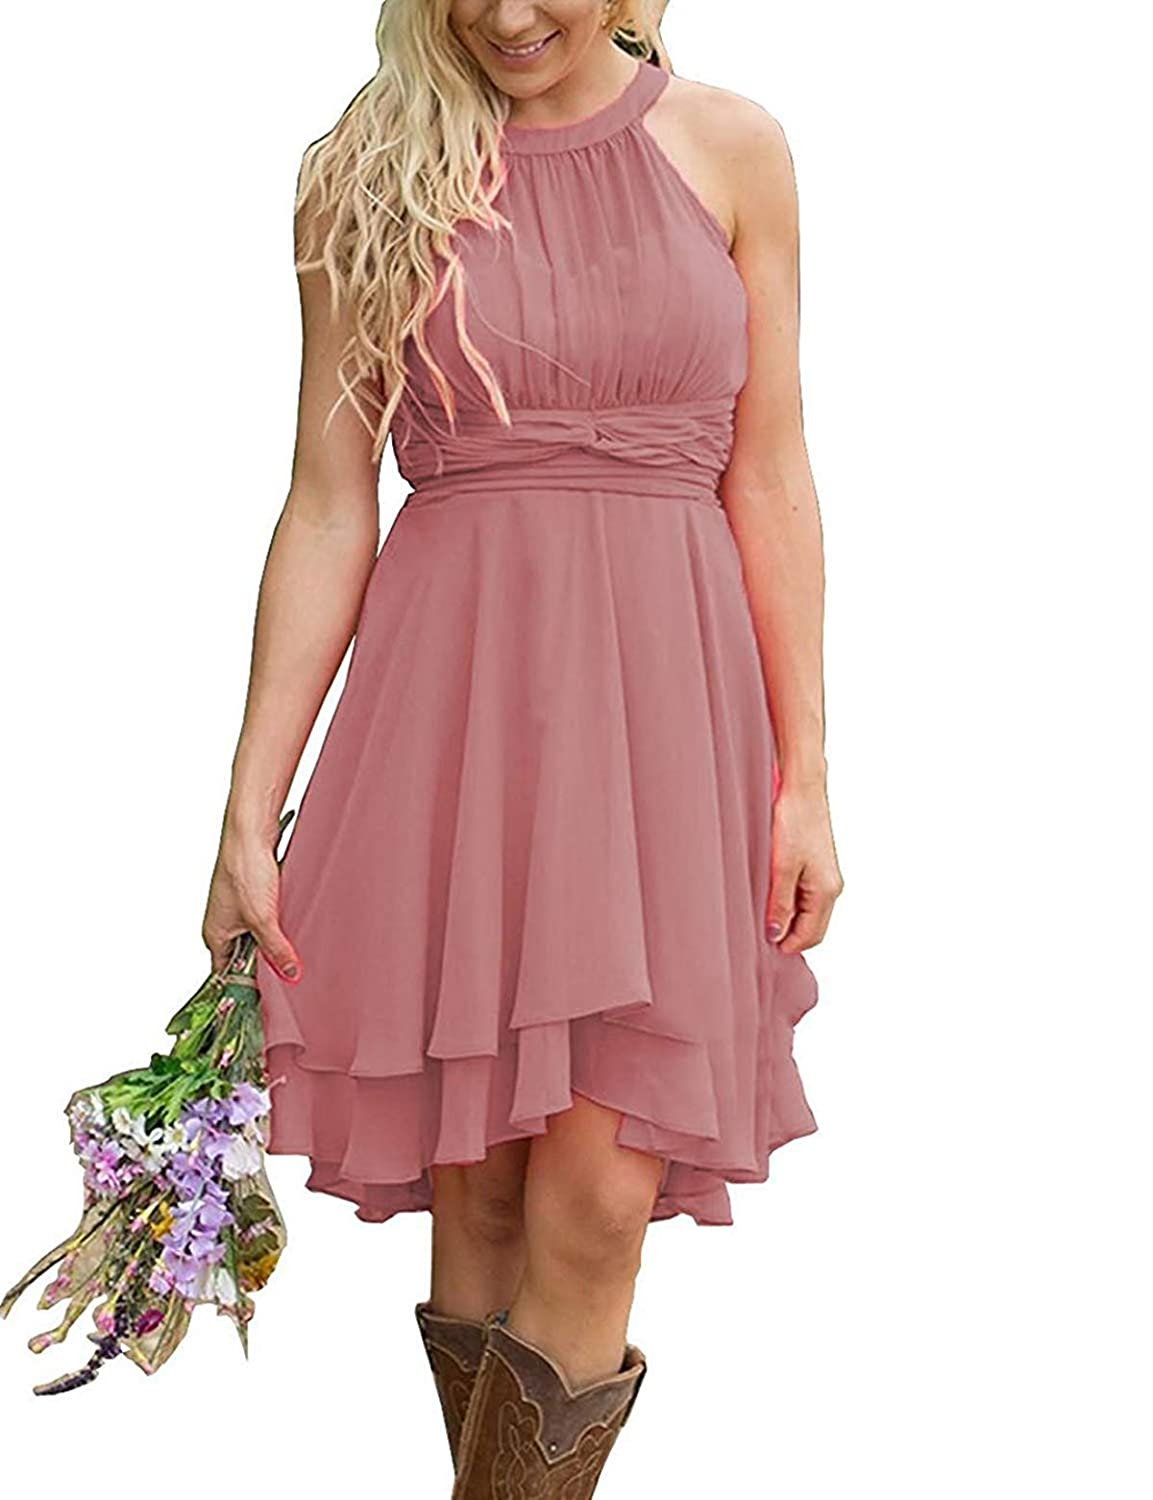 Dark pink FJMM HiLo Prom Dress 2 Layers Pleated Bridesmaid Gown for Beach Wedding